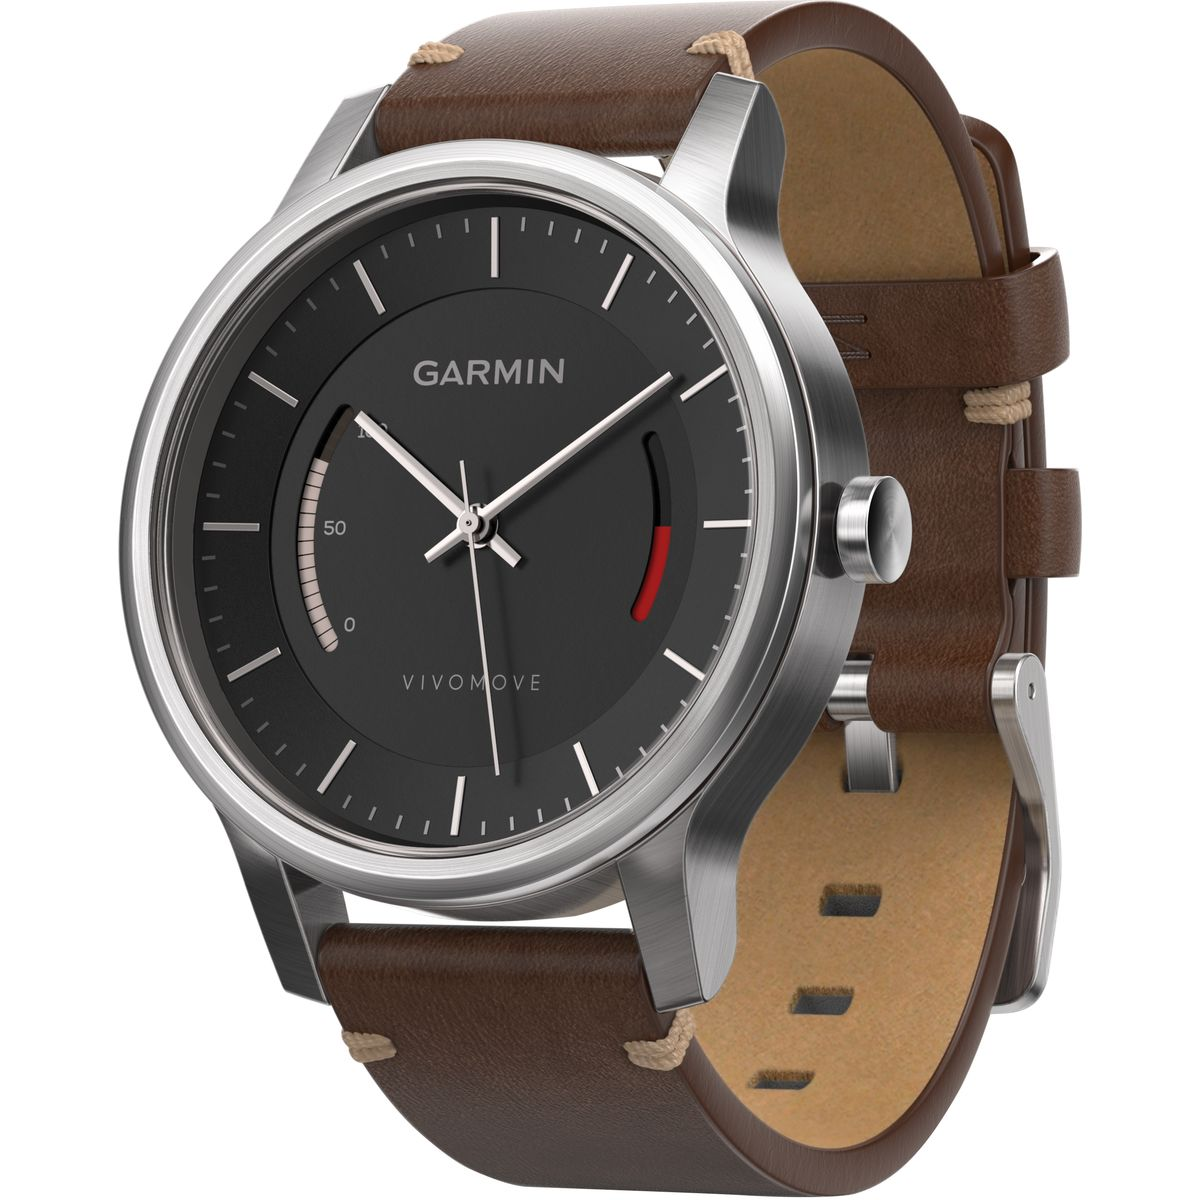 Garmin Vivomove Premium Activity Tracker Stainless Steel, LEATHER BAND